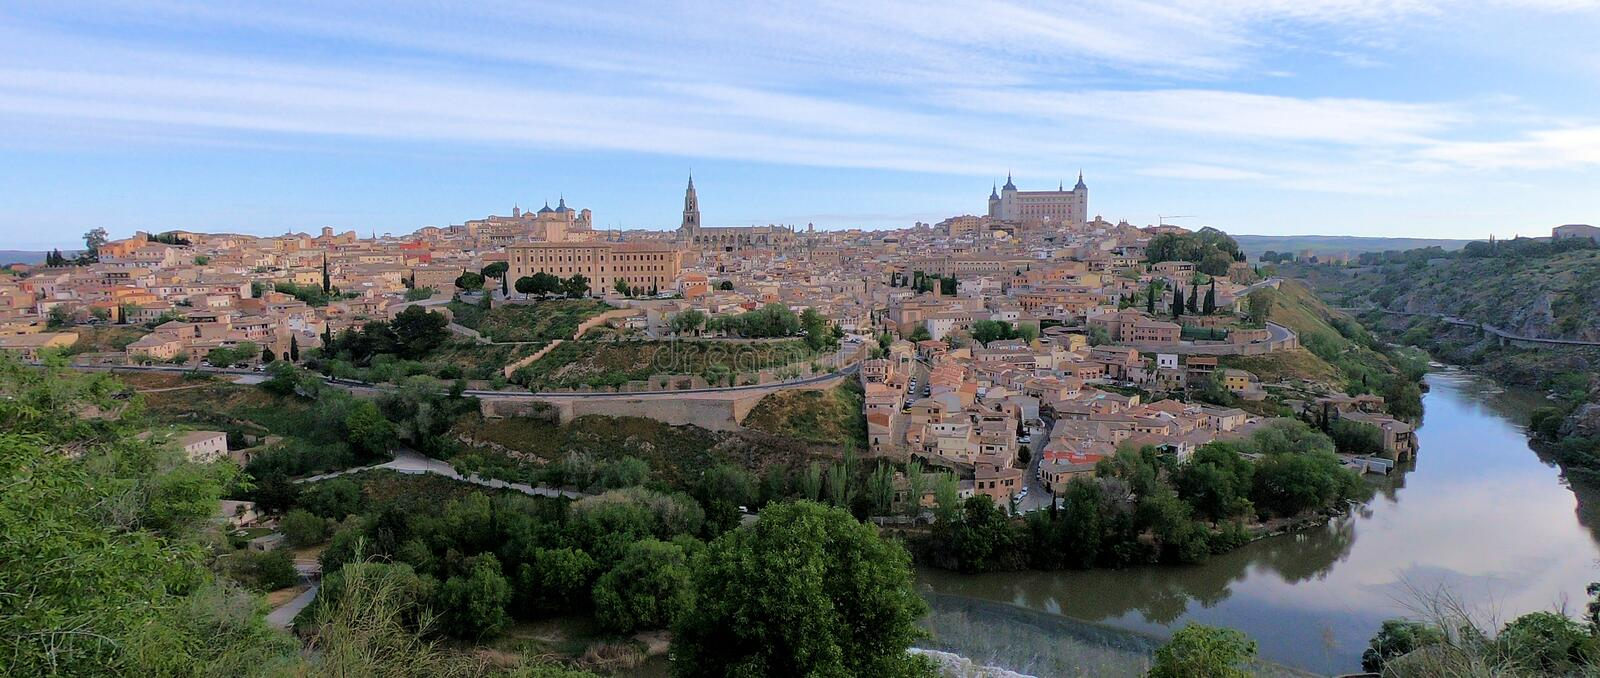 City of Toledo Spain. Beautiful skyline of the city of Toledo in Spain royalty free stock photos